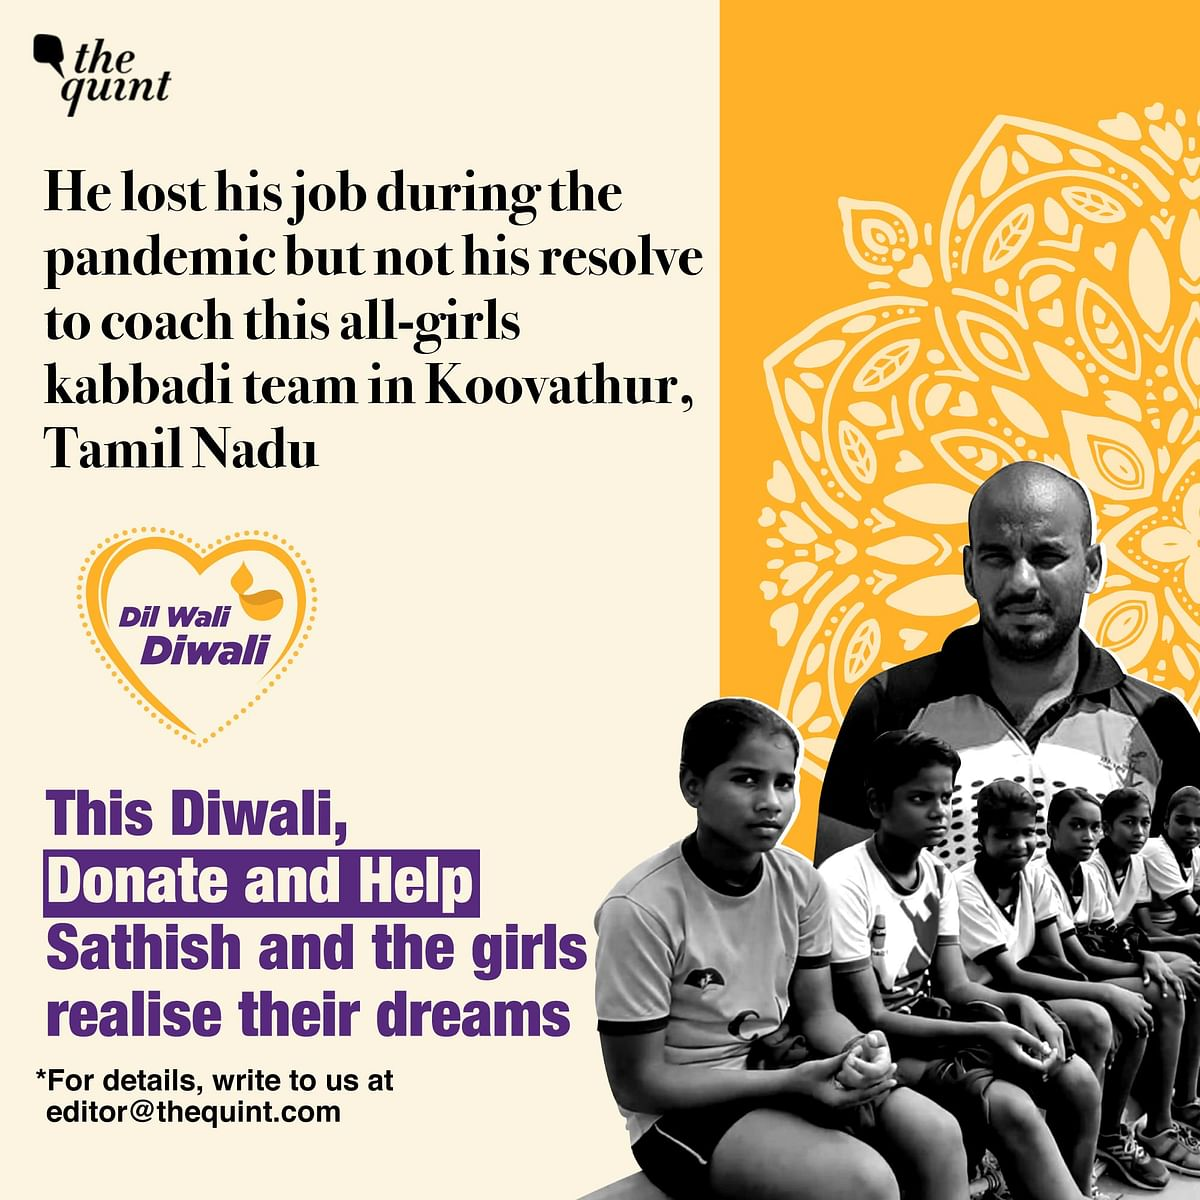 This Diwali, your donations can help Sathish build a sports academy to train many more girls for free.